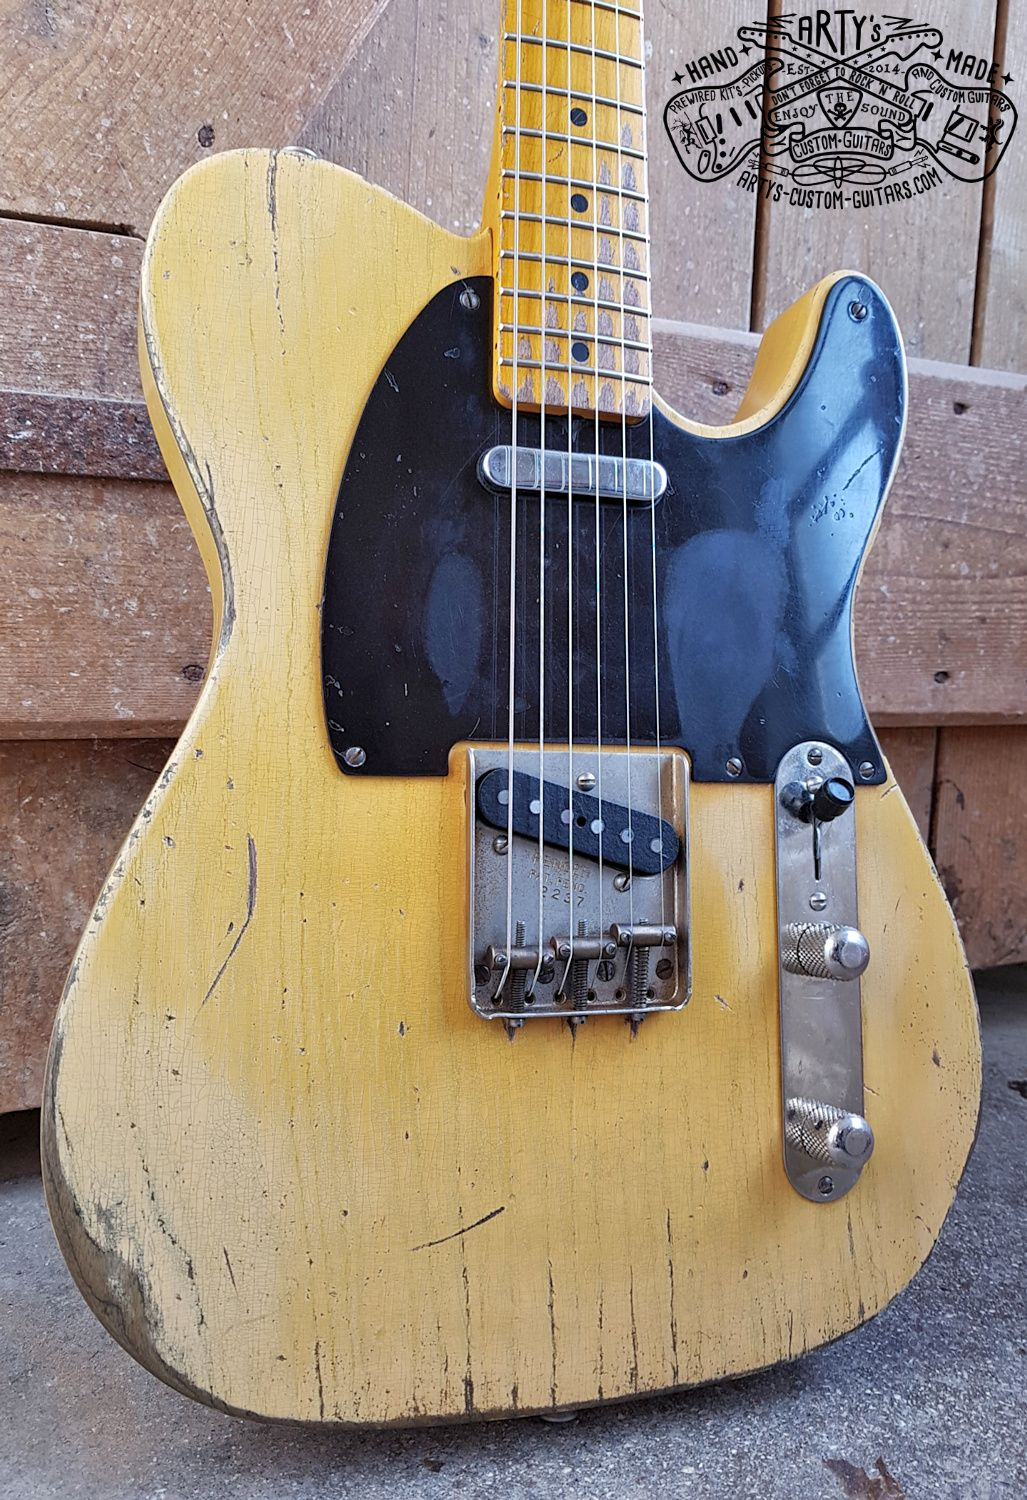 fender bass wiring diagram broadcaster butterscotch blonde telecaster heavy relic fender p bass wiring diagram broadcaster butterscotch blonde telecaster heavy relic